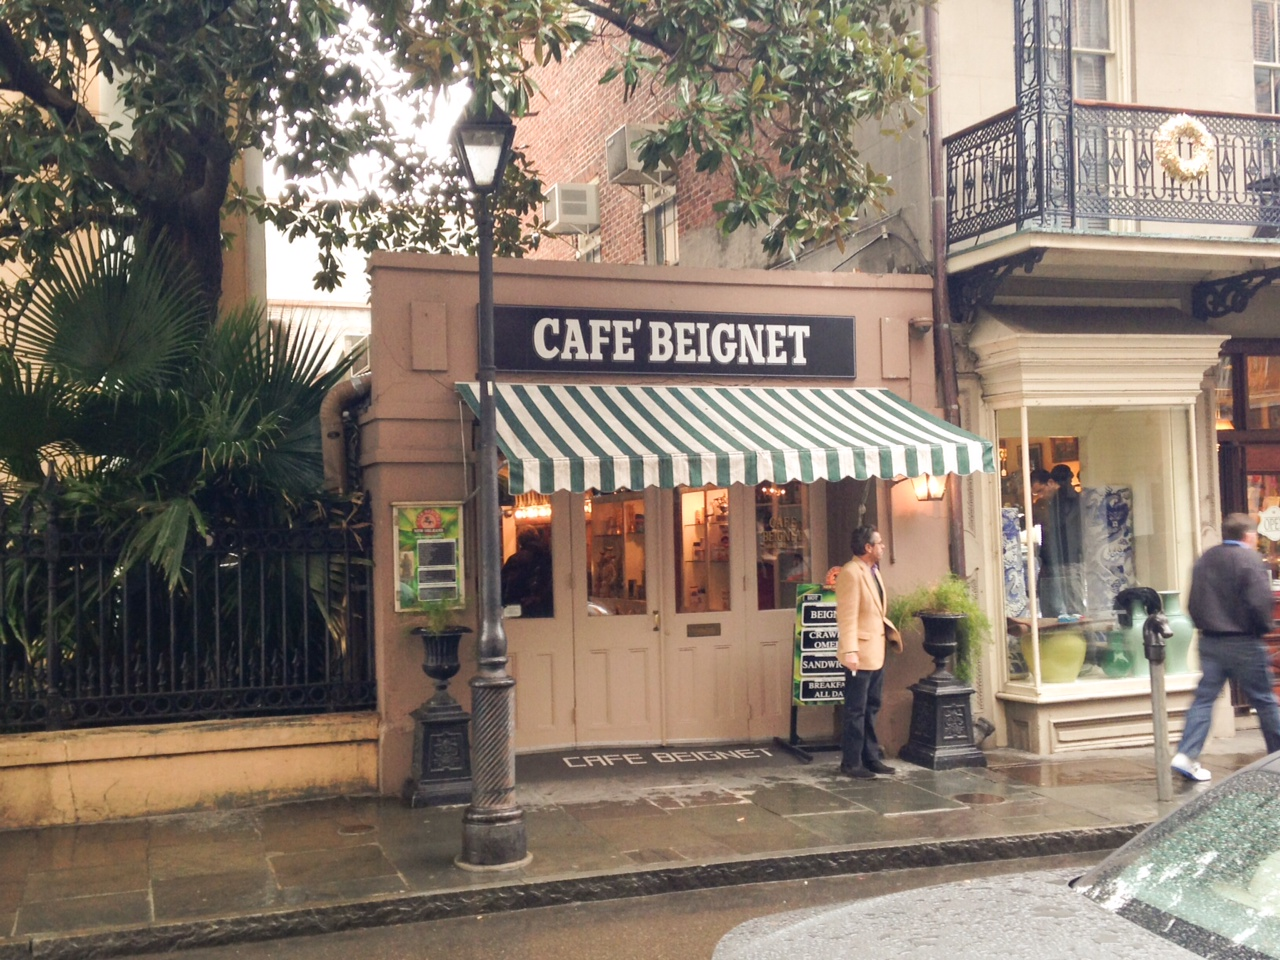 Cafe Beignet - the one on Royal Street.